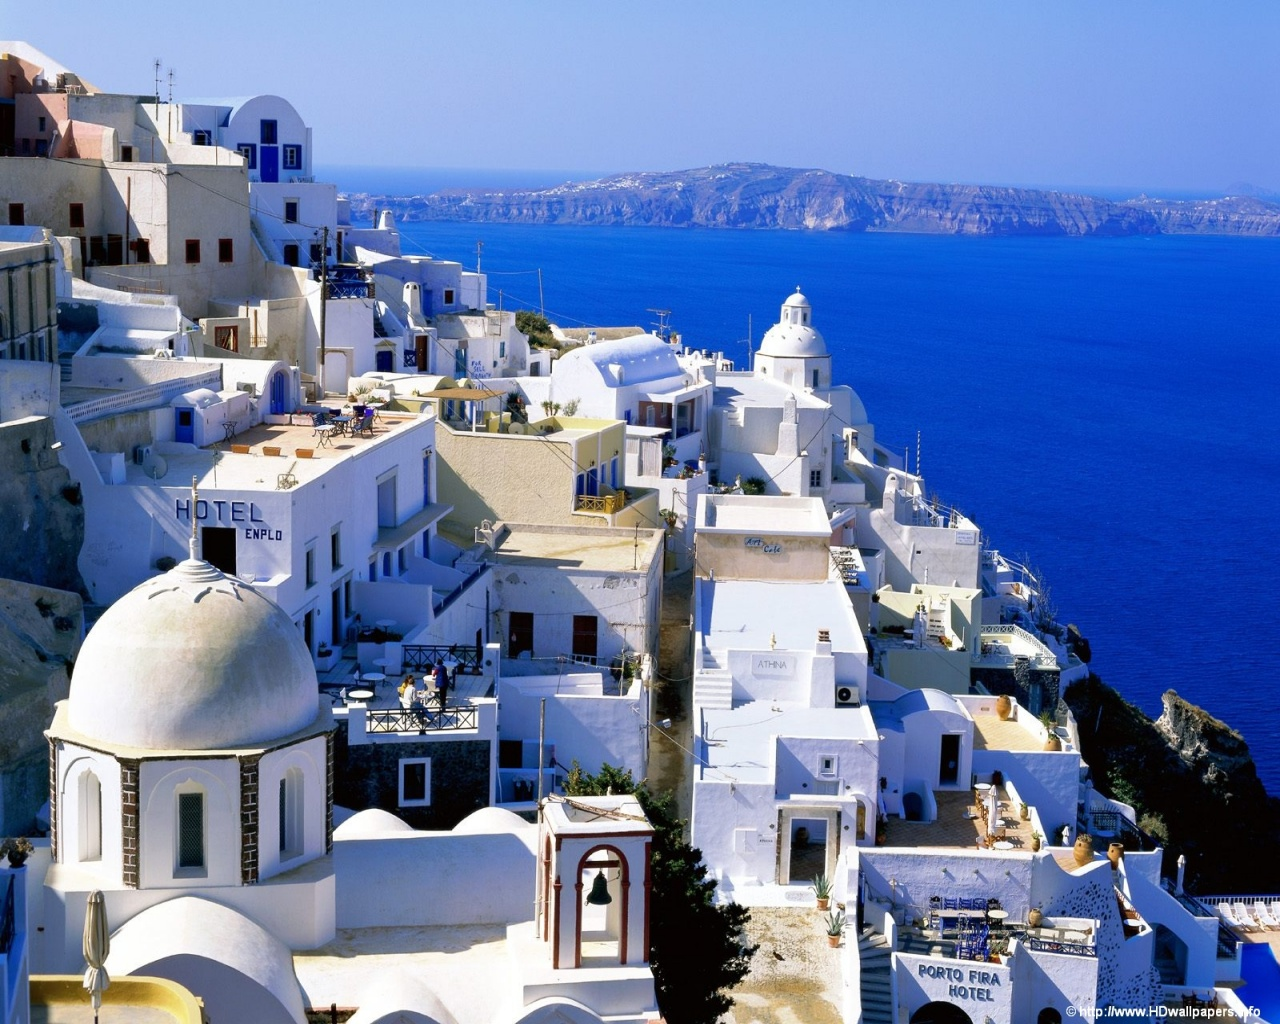 1280x1024 Santorini   Greece desktop PC and Mac wallpaper 1280x1024